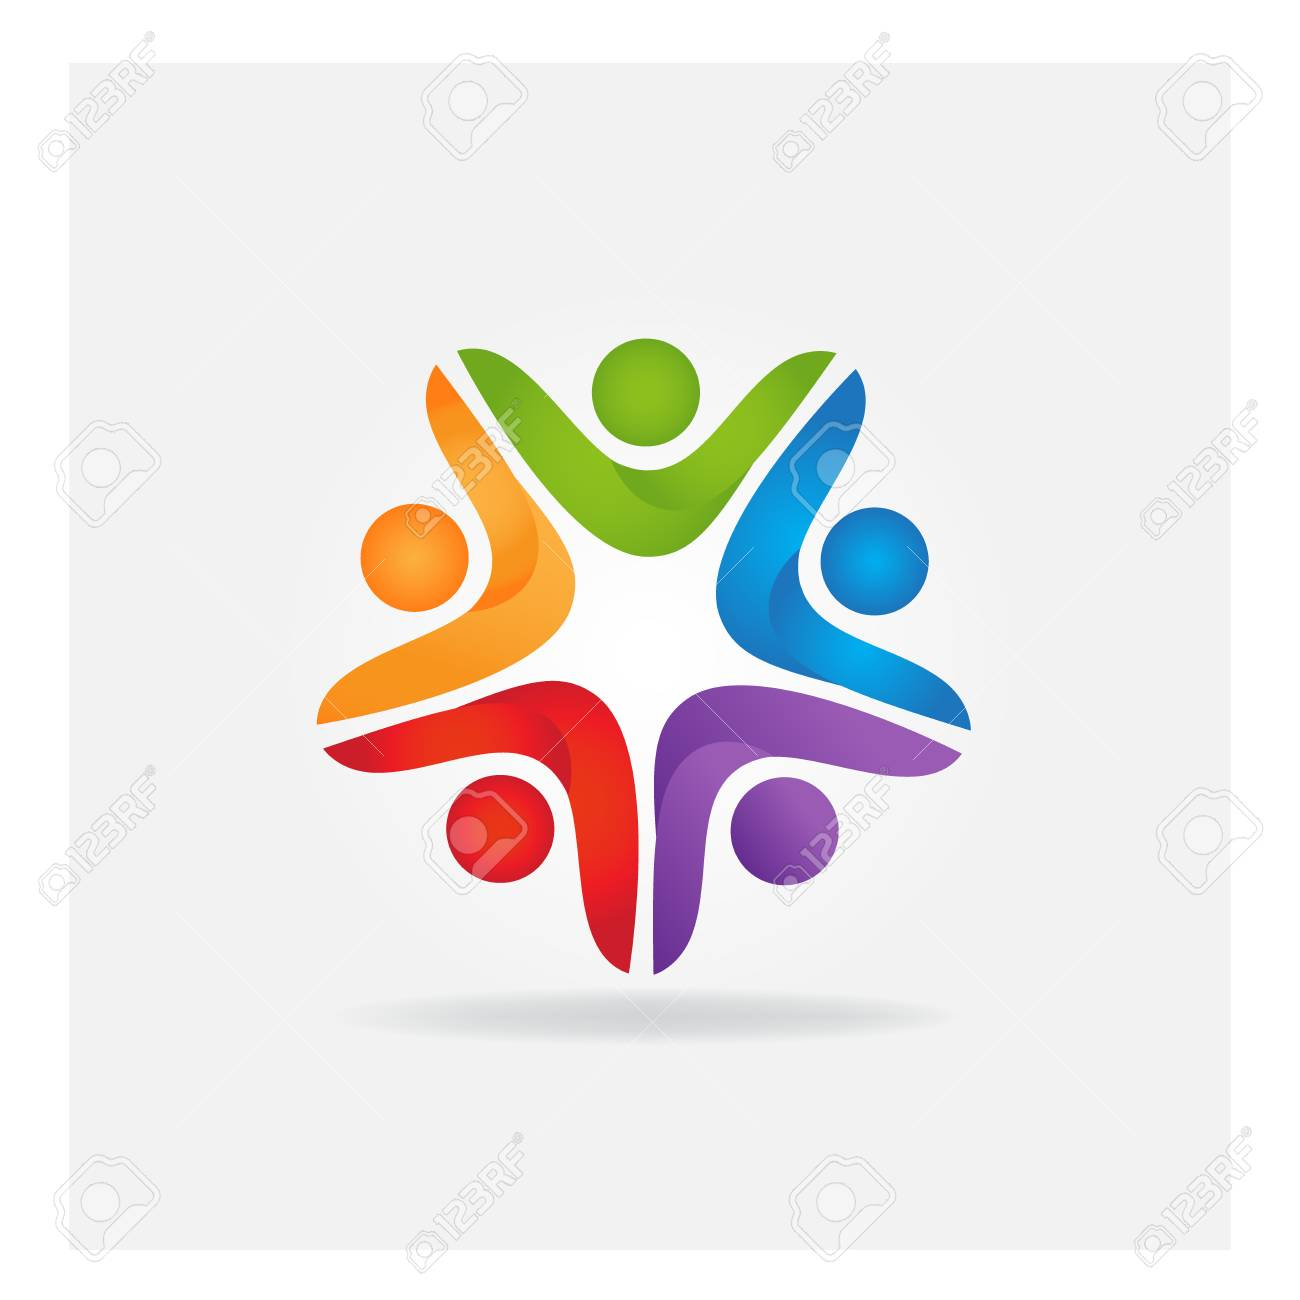 teamwork leader business people logo vector icon identity card